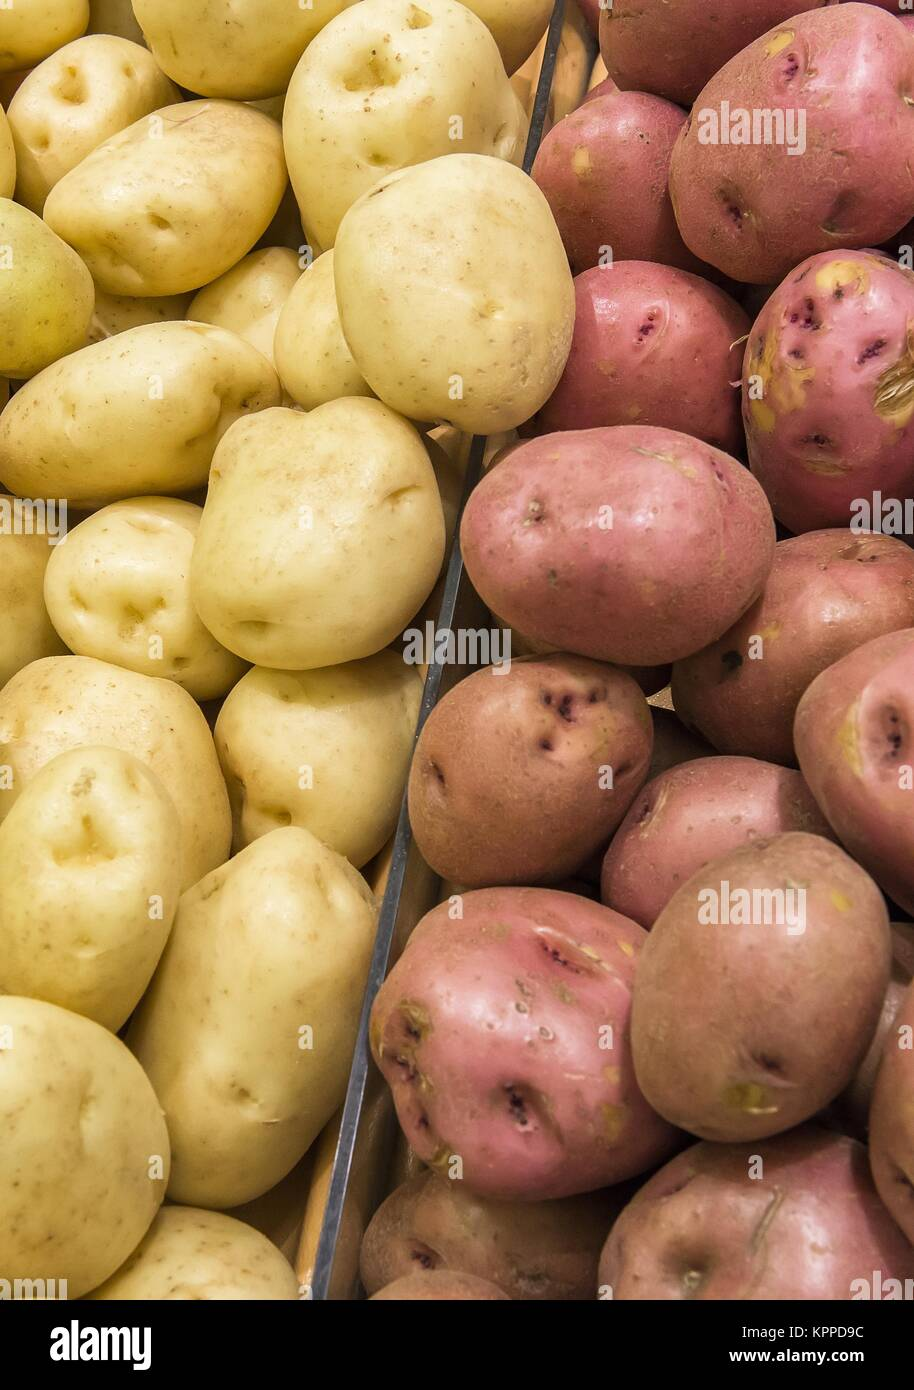 harvested potato tubers different varieties from market shelves - Stock Image